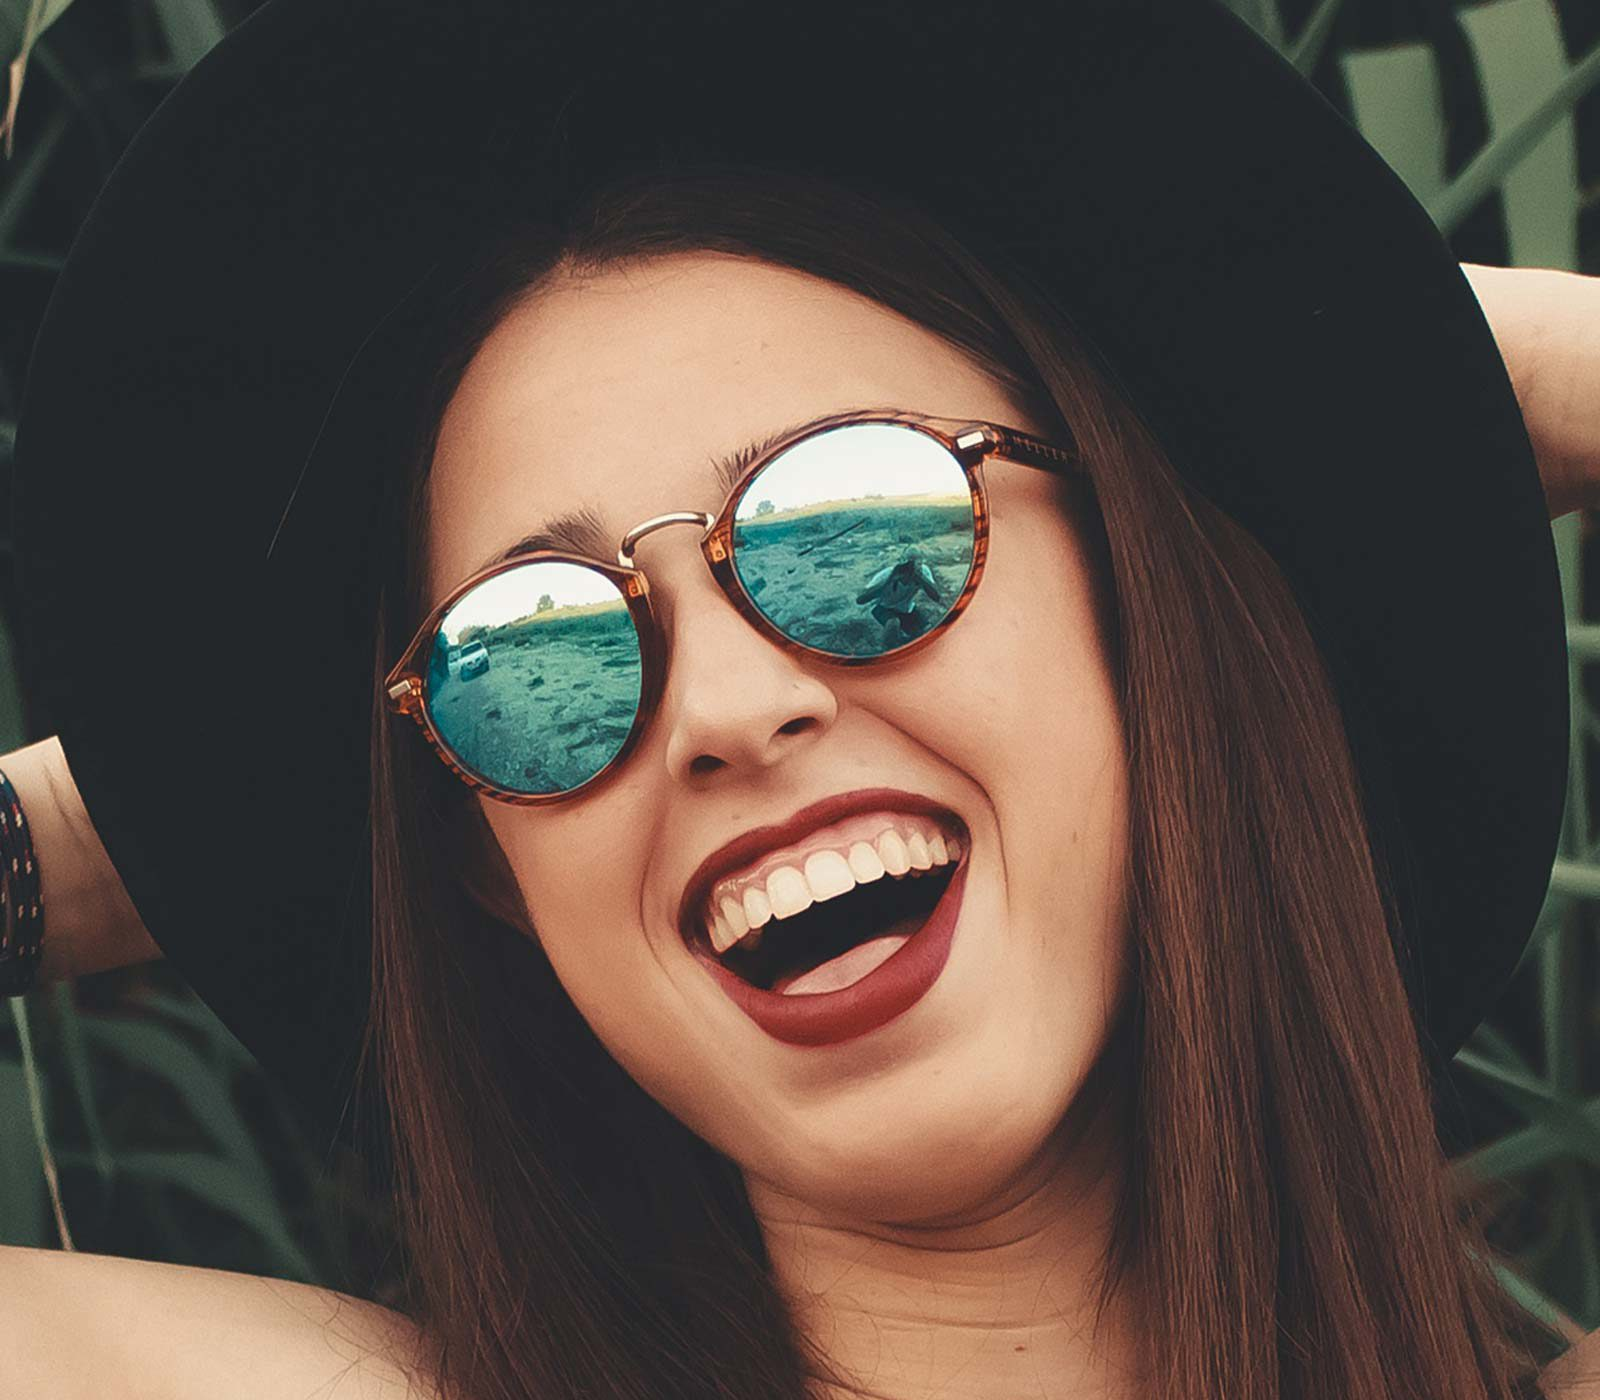 Close up of woman in brimmed hat and blue sunglasses laughing with hands at back of head.